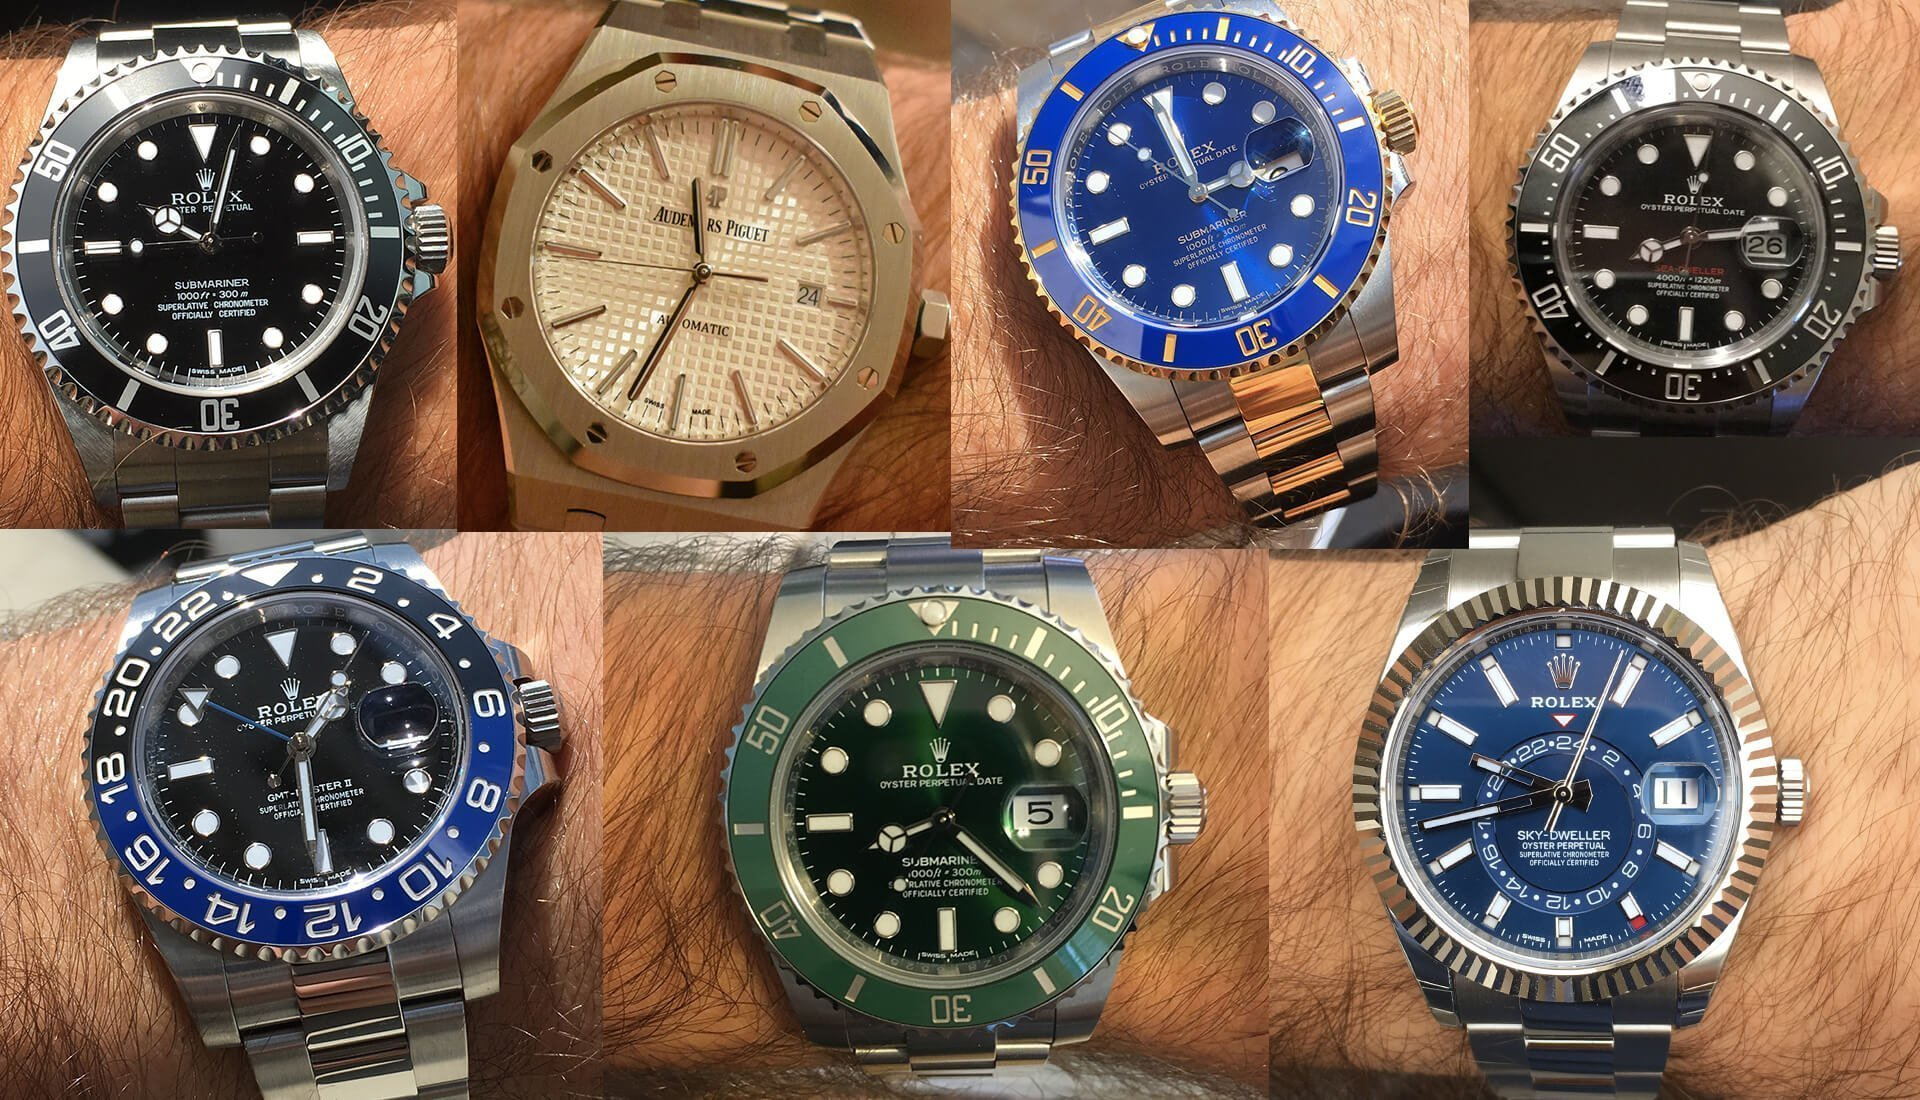 Collection Review: A 19 Year Old's Luxury Rolex Watch Collection